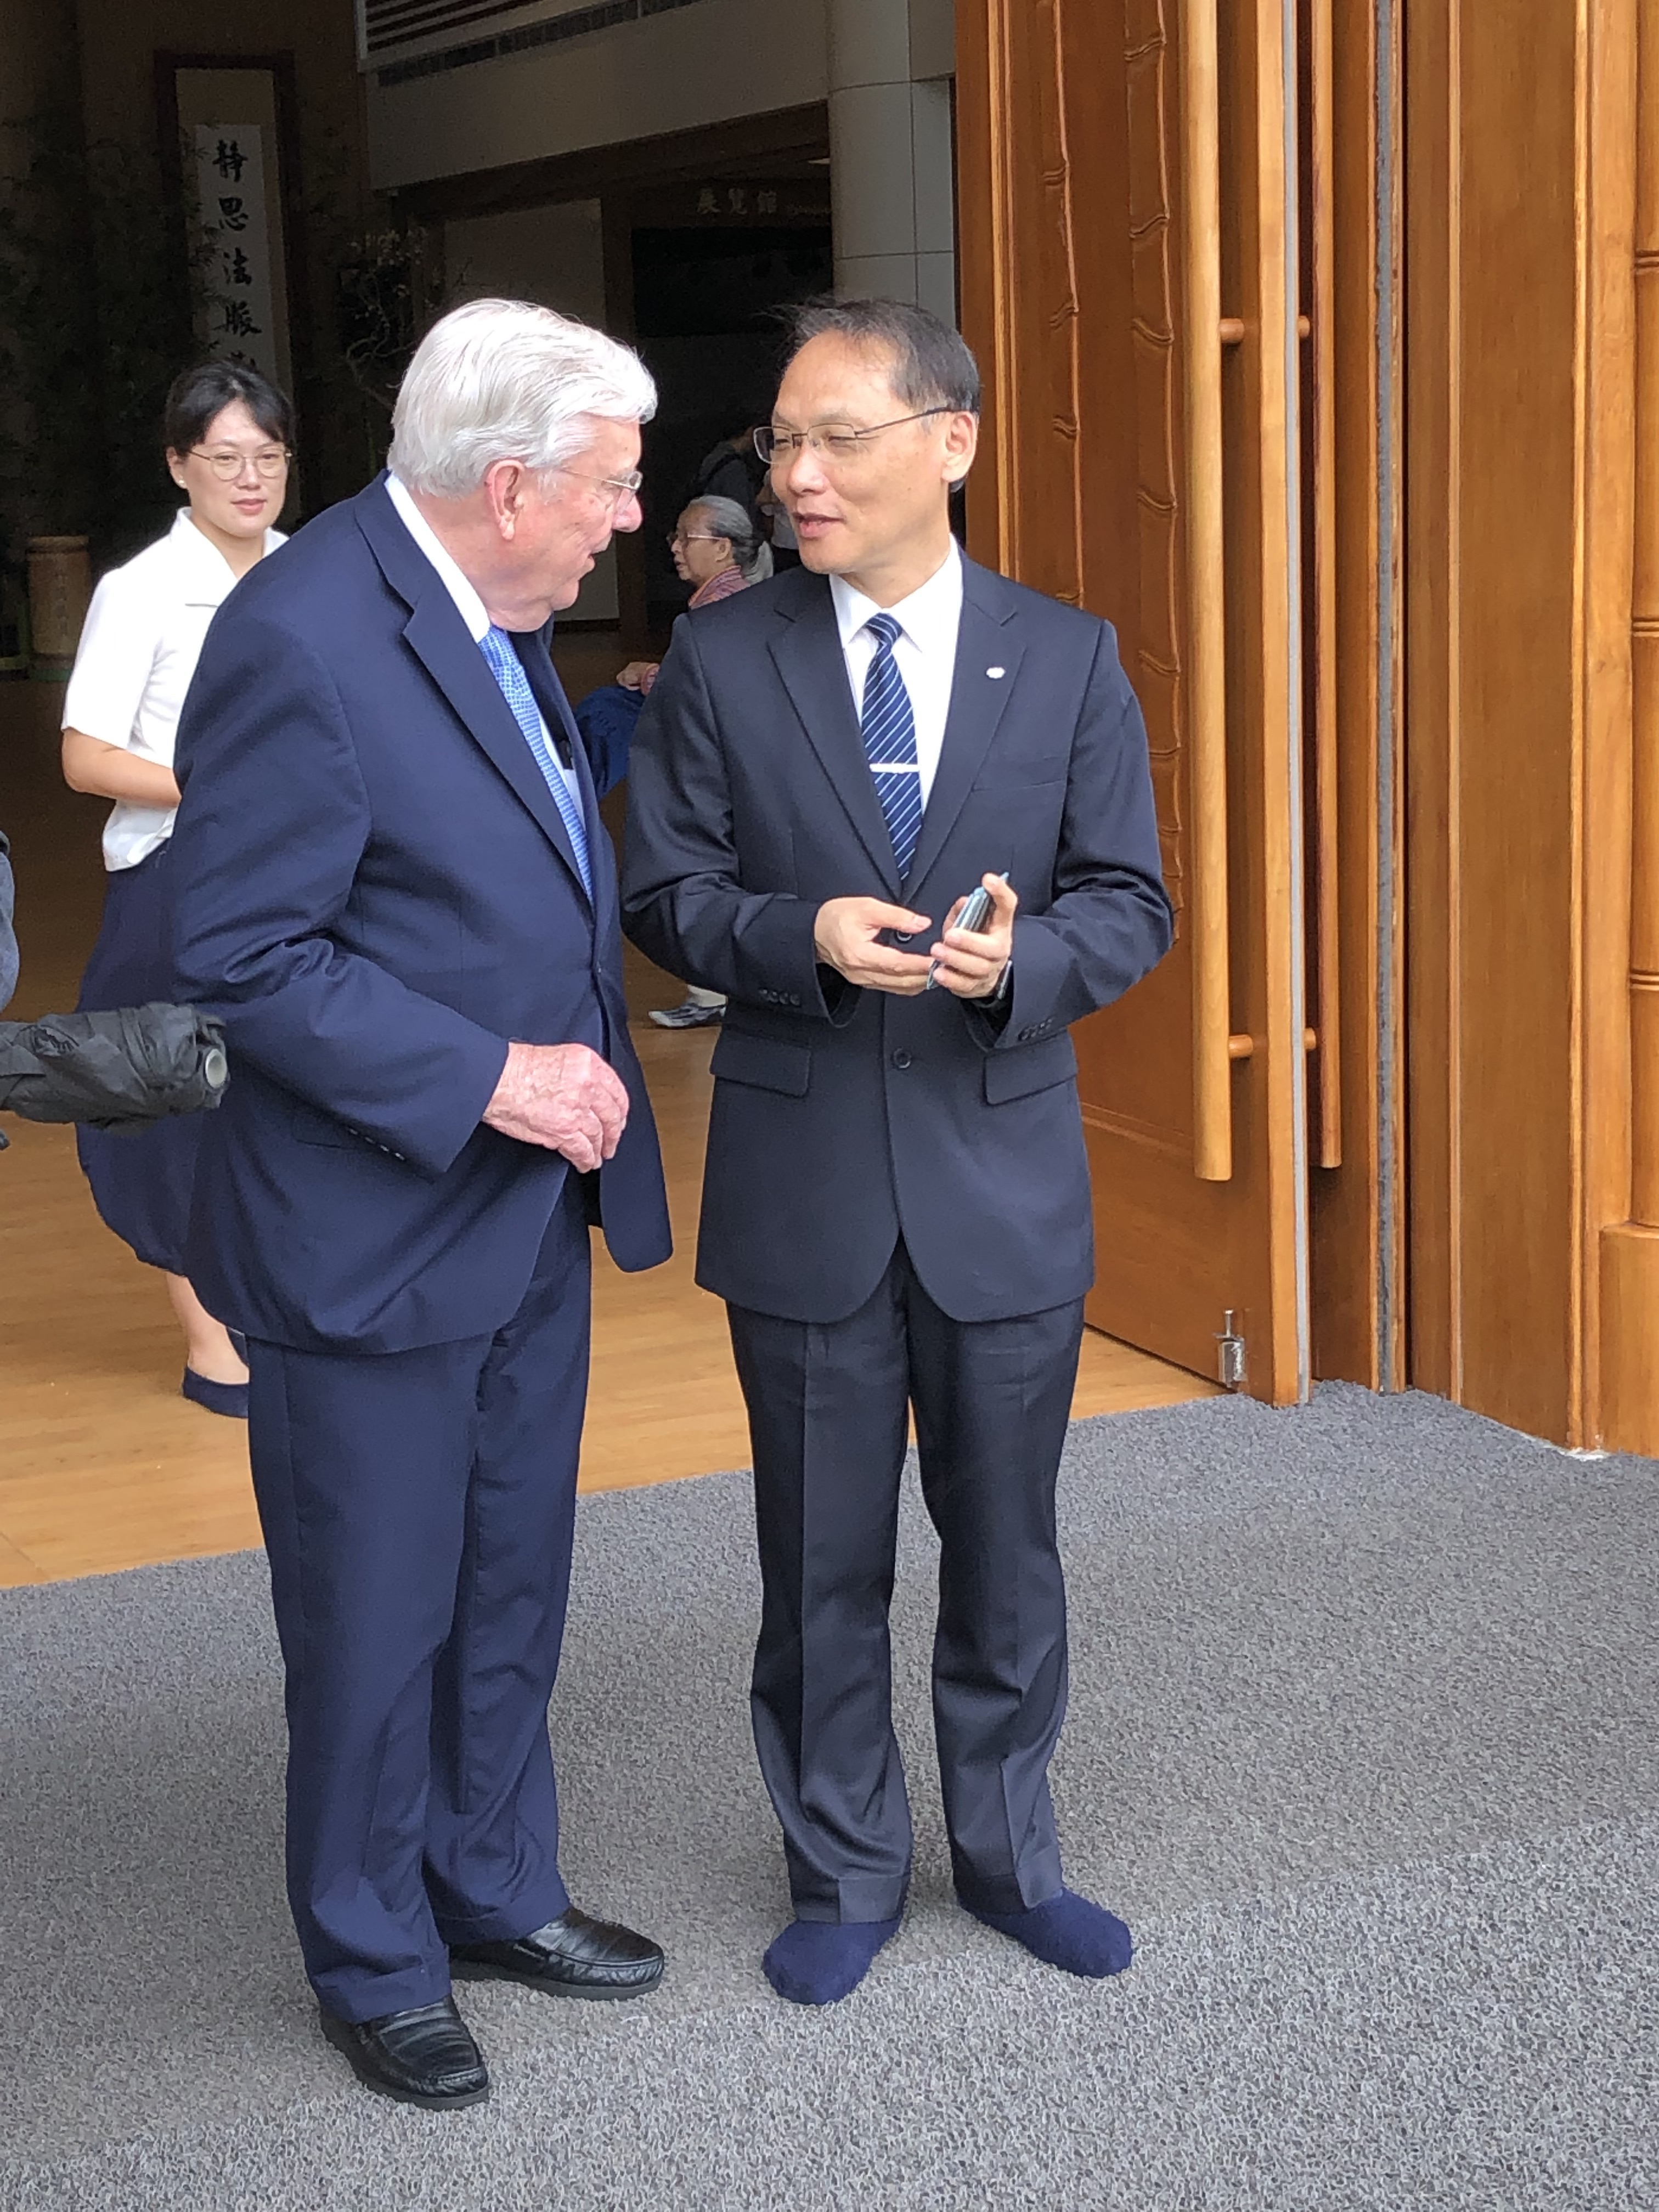 President M. Russell Ballard, left, after a meeting with the Buddhist Compassion Relief in May 2019.